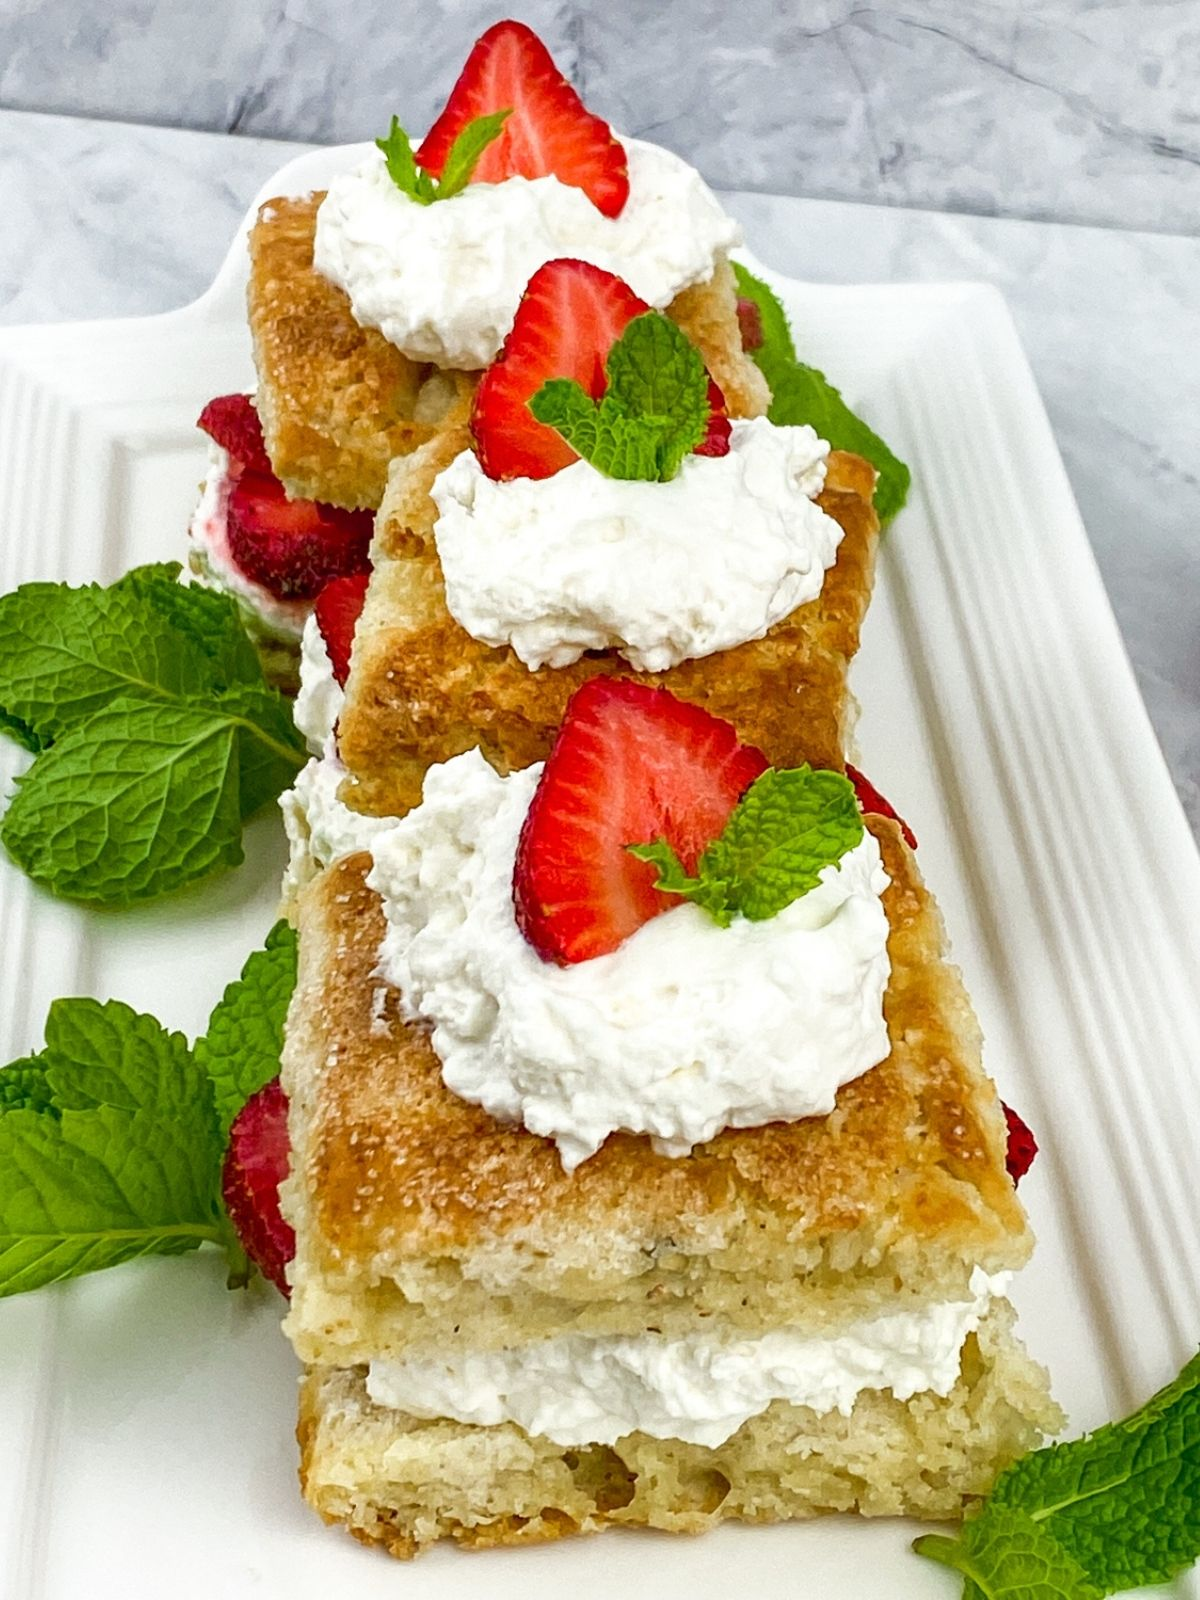 Three prepared strawberry shortcakes assembled and garnished with mint sprigs.